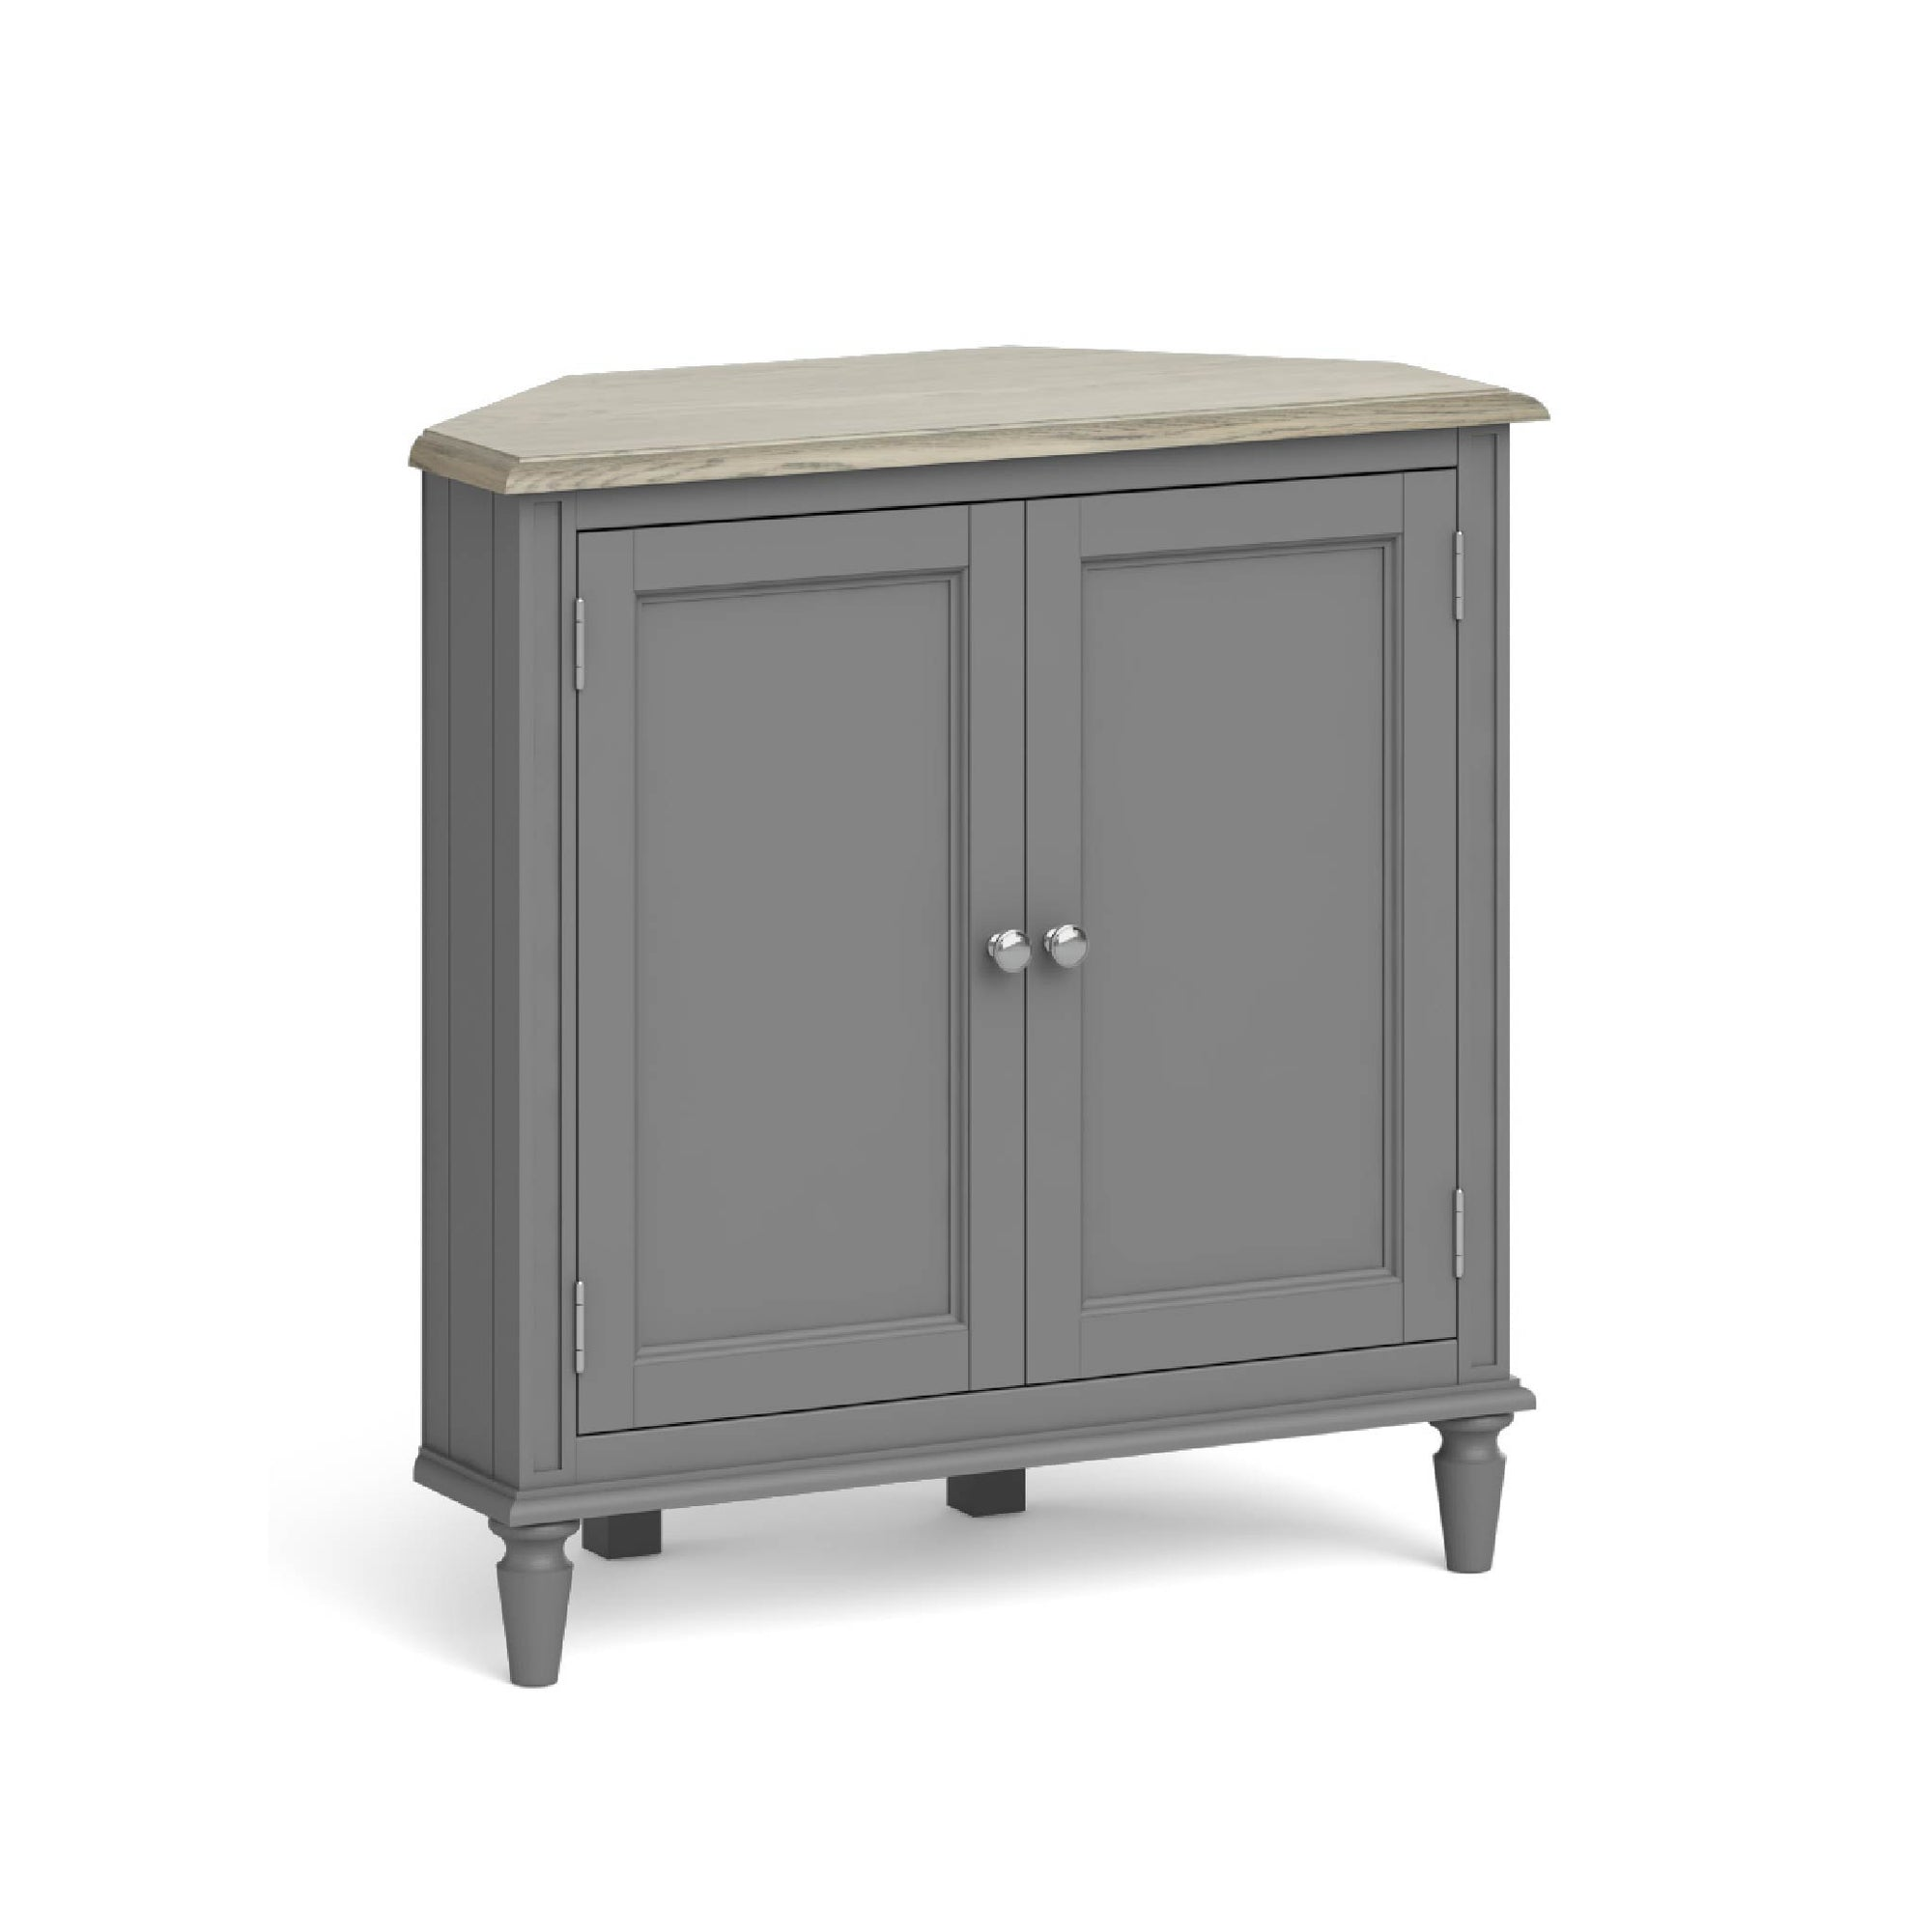 The Mulsanne Grey French Style Wooden Corner Cupboard from Roseland Furniture